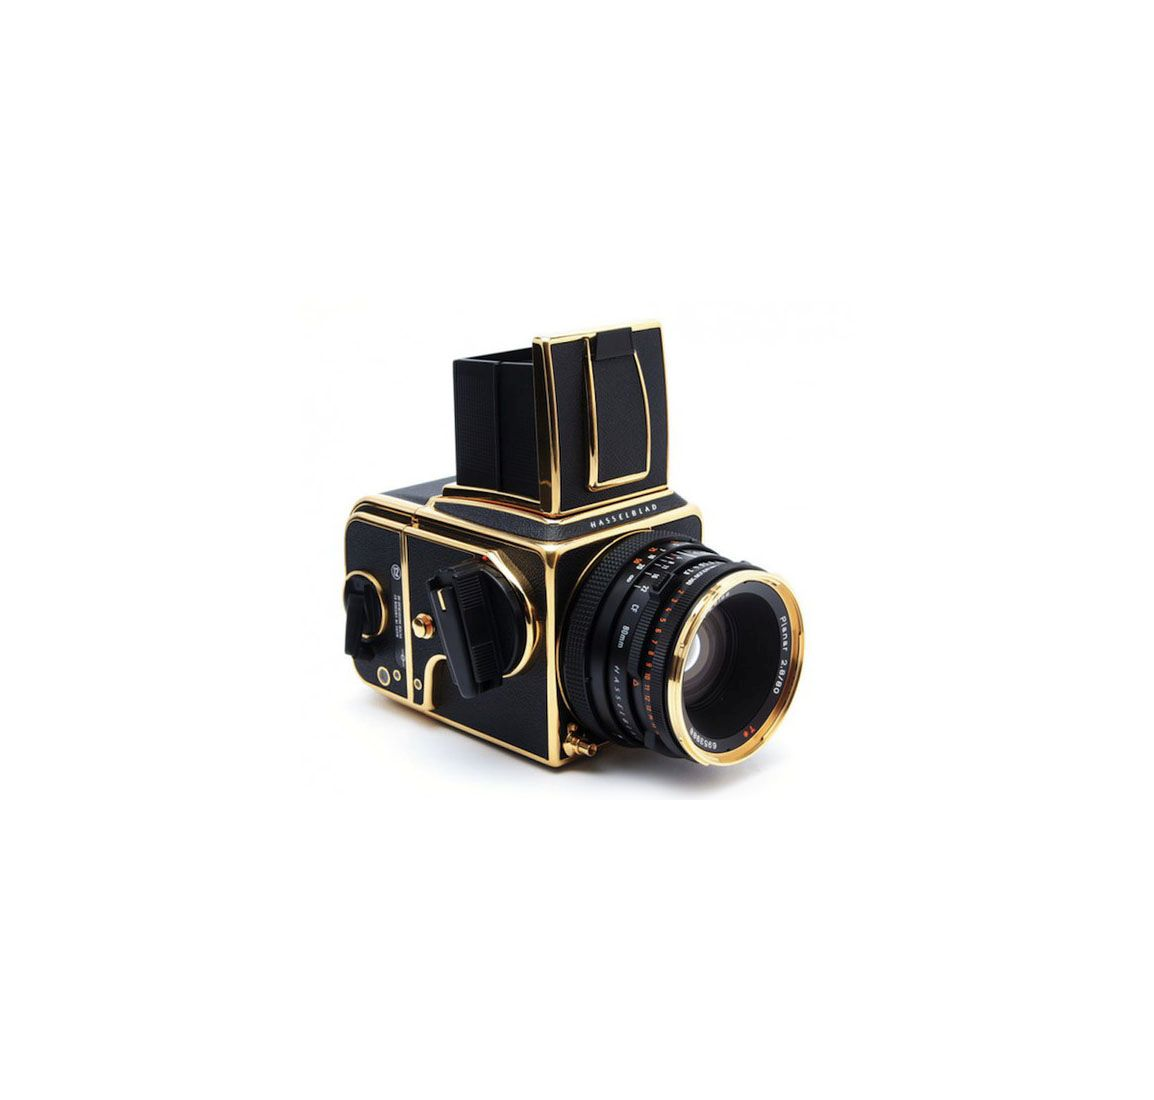 Hasselblad 503cw Gold body